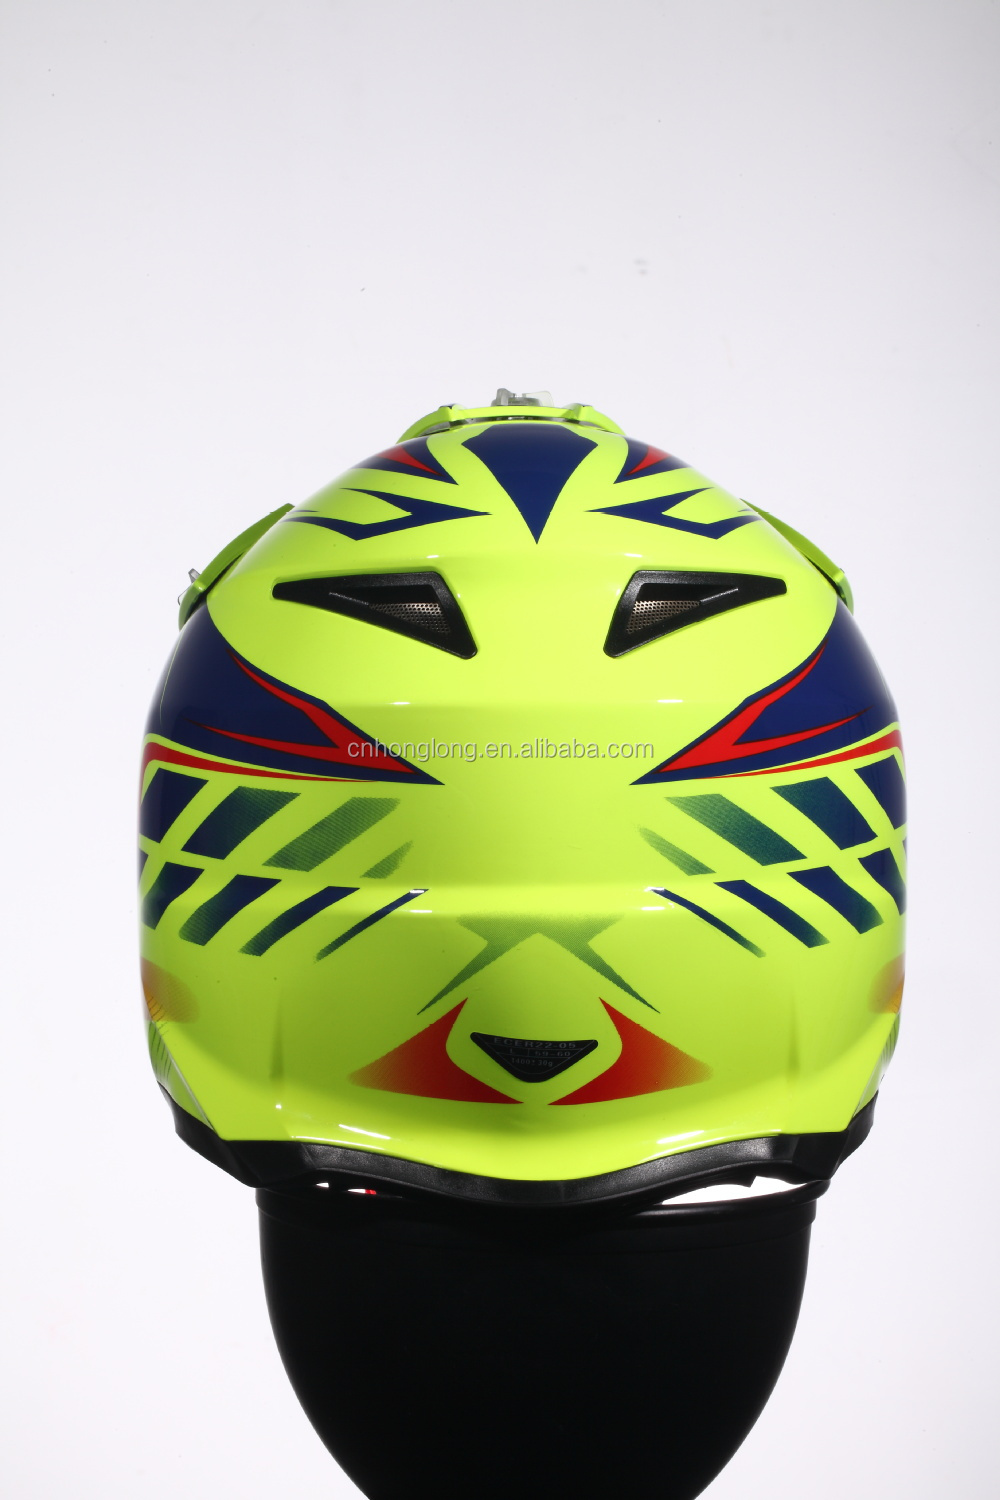 HLS Brand,DP-911,Motorcycle helmet,ECE Certification,Cross Racing helmet with Top quality,ECE Standard